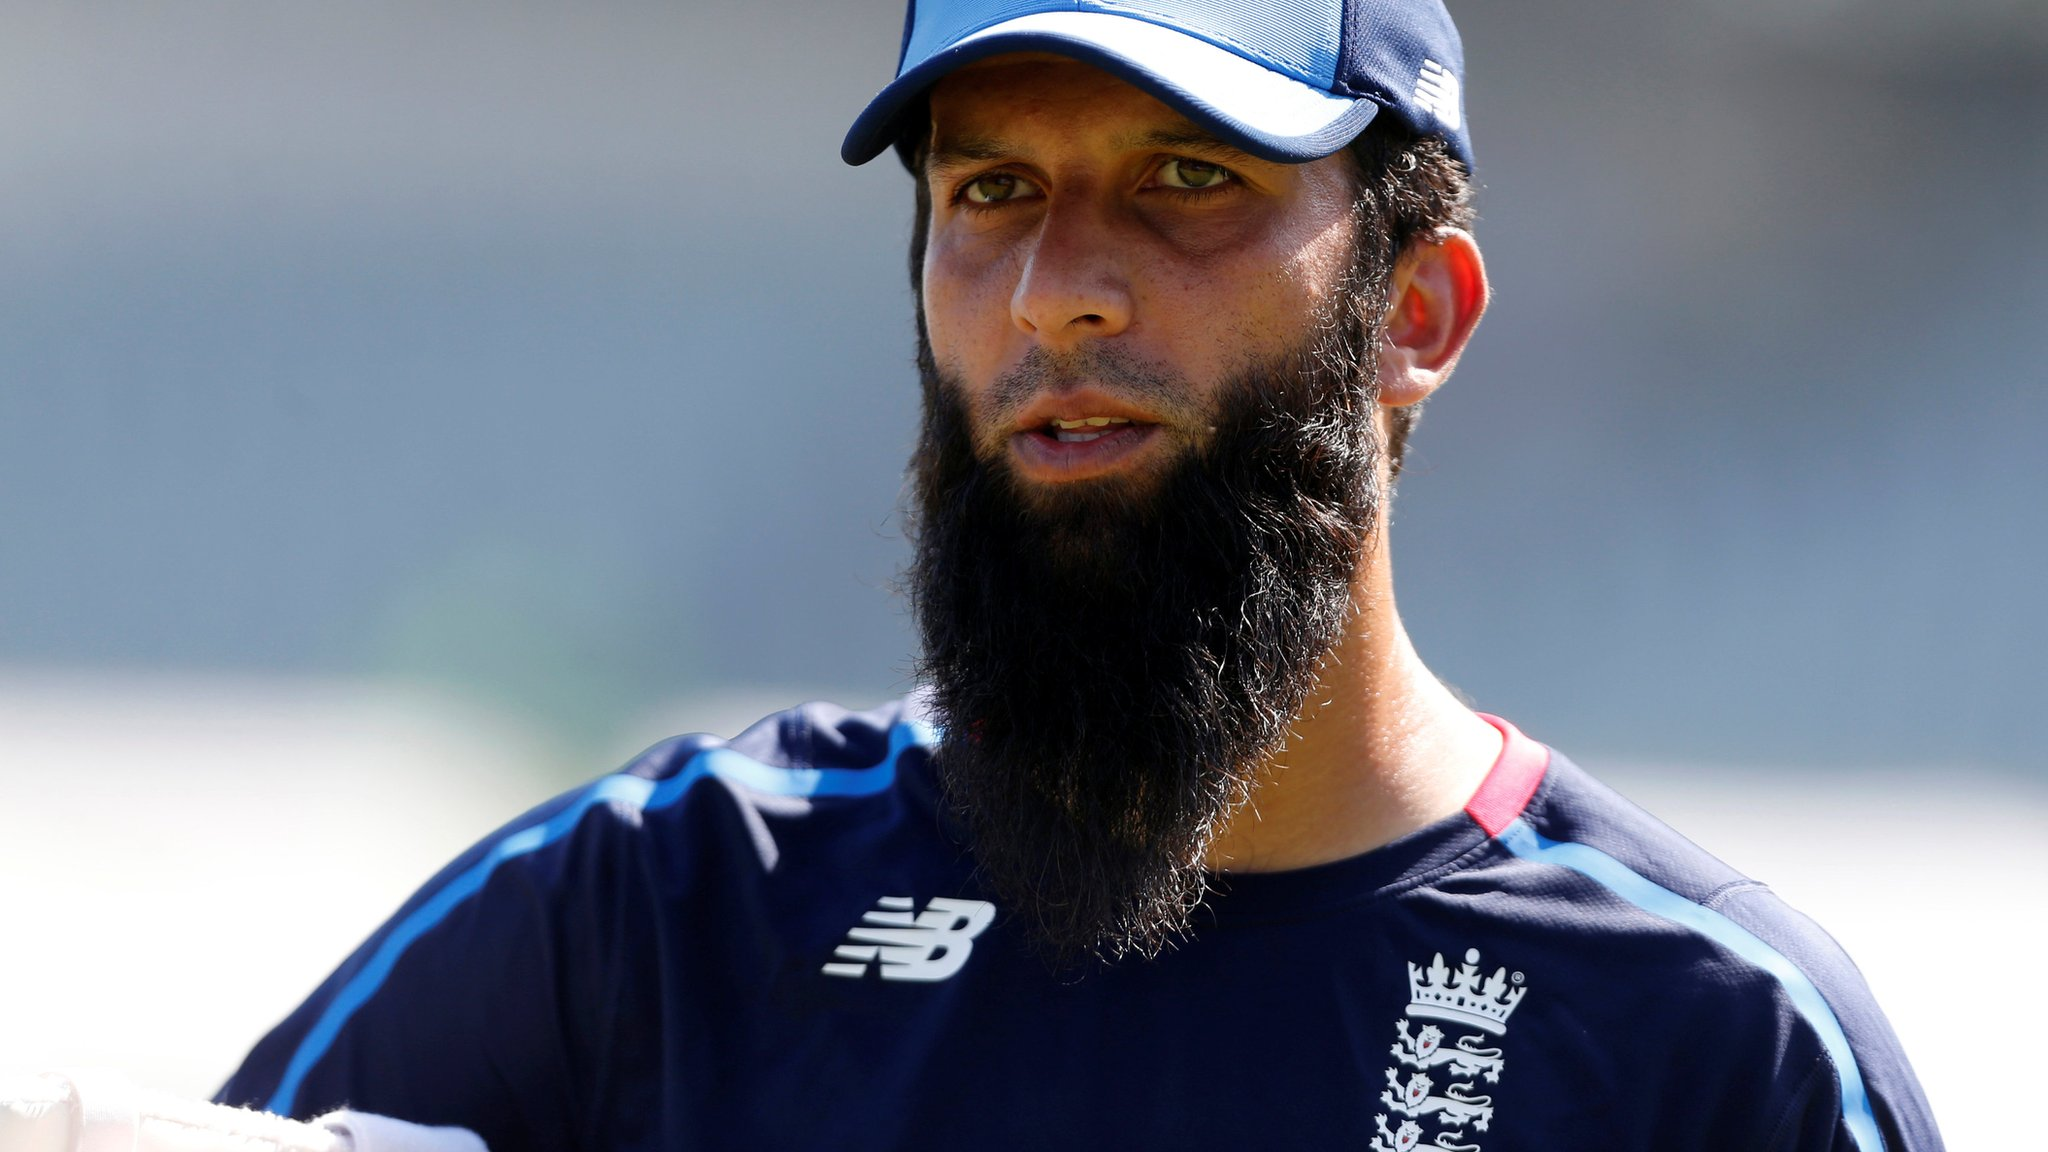 Moeen Ali's racial slur claim to be investigated